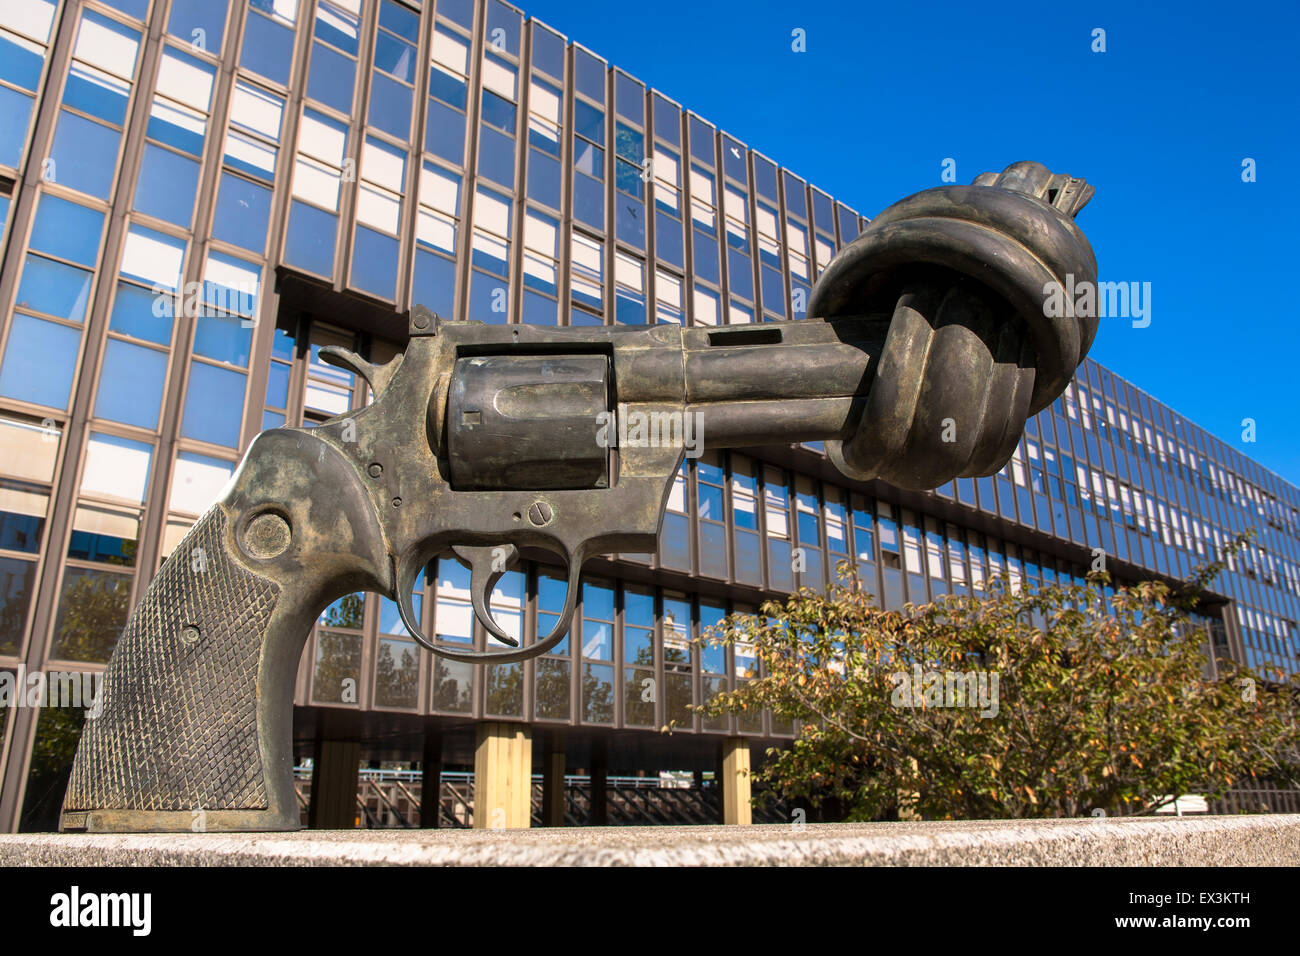 LUX, Luxembourg, city of Luxembourg, Kirchberg district, sculpture Non Violence of the swedish artist Carl Frederik - Stock Image